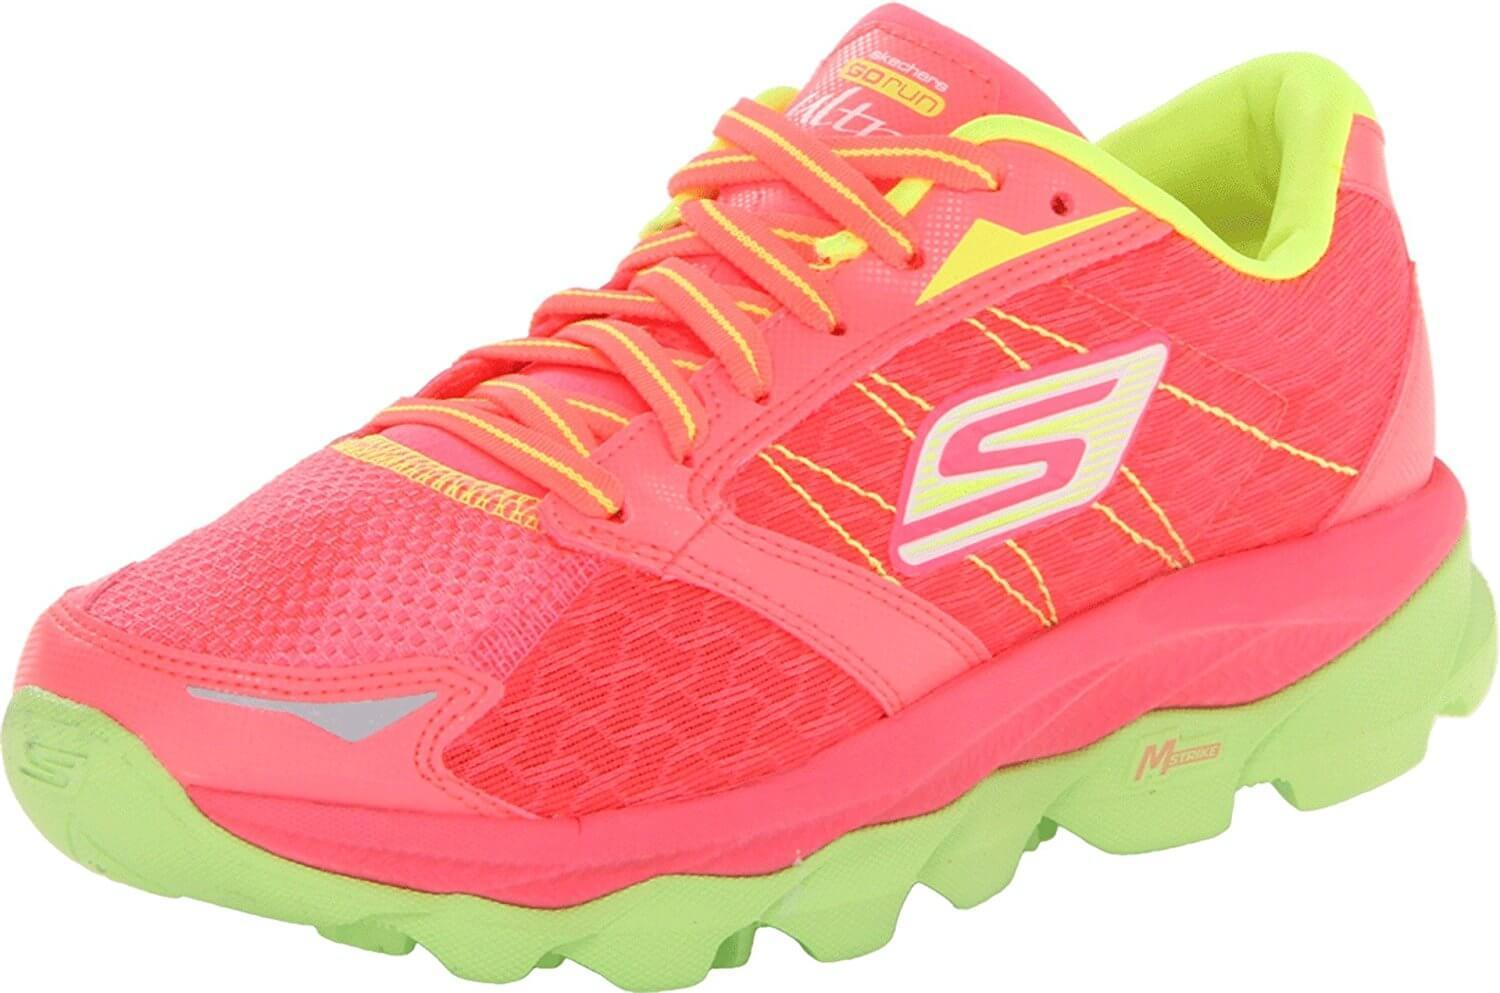 Skechers GoRun Ultra feature